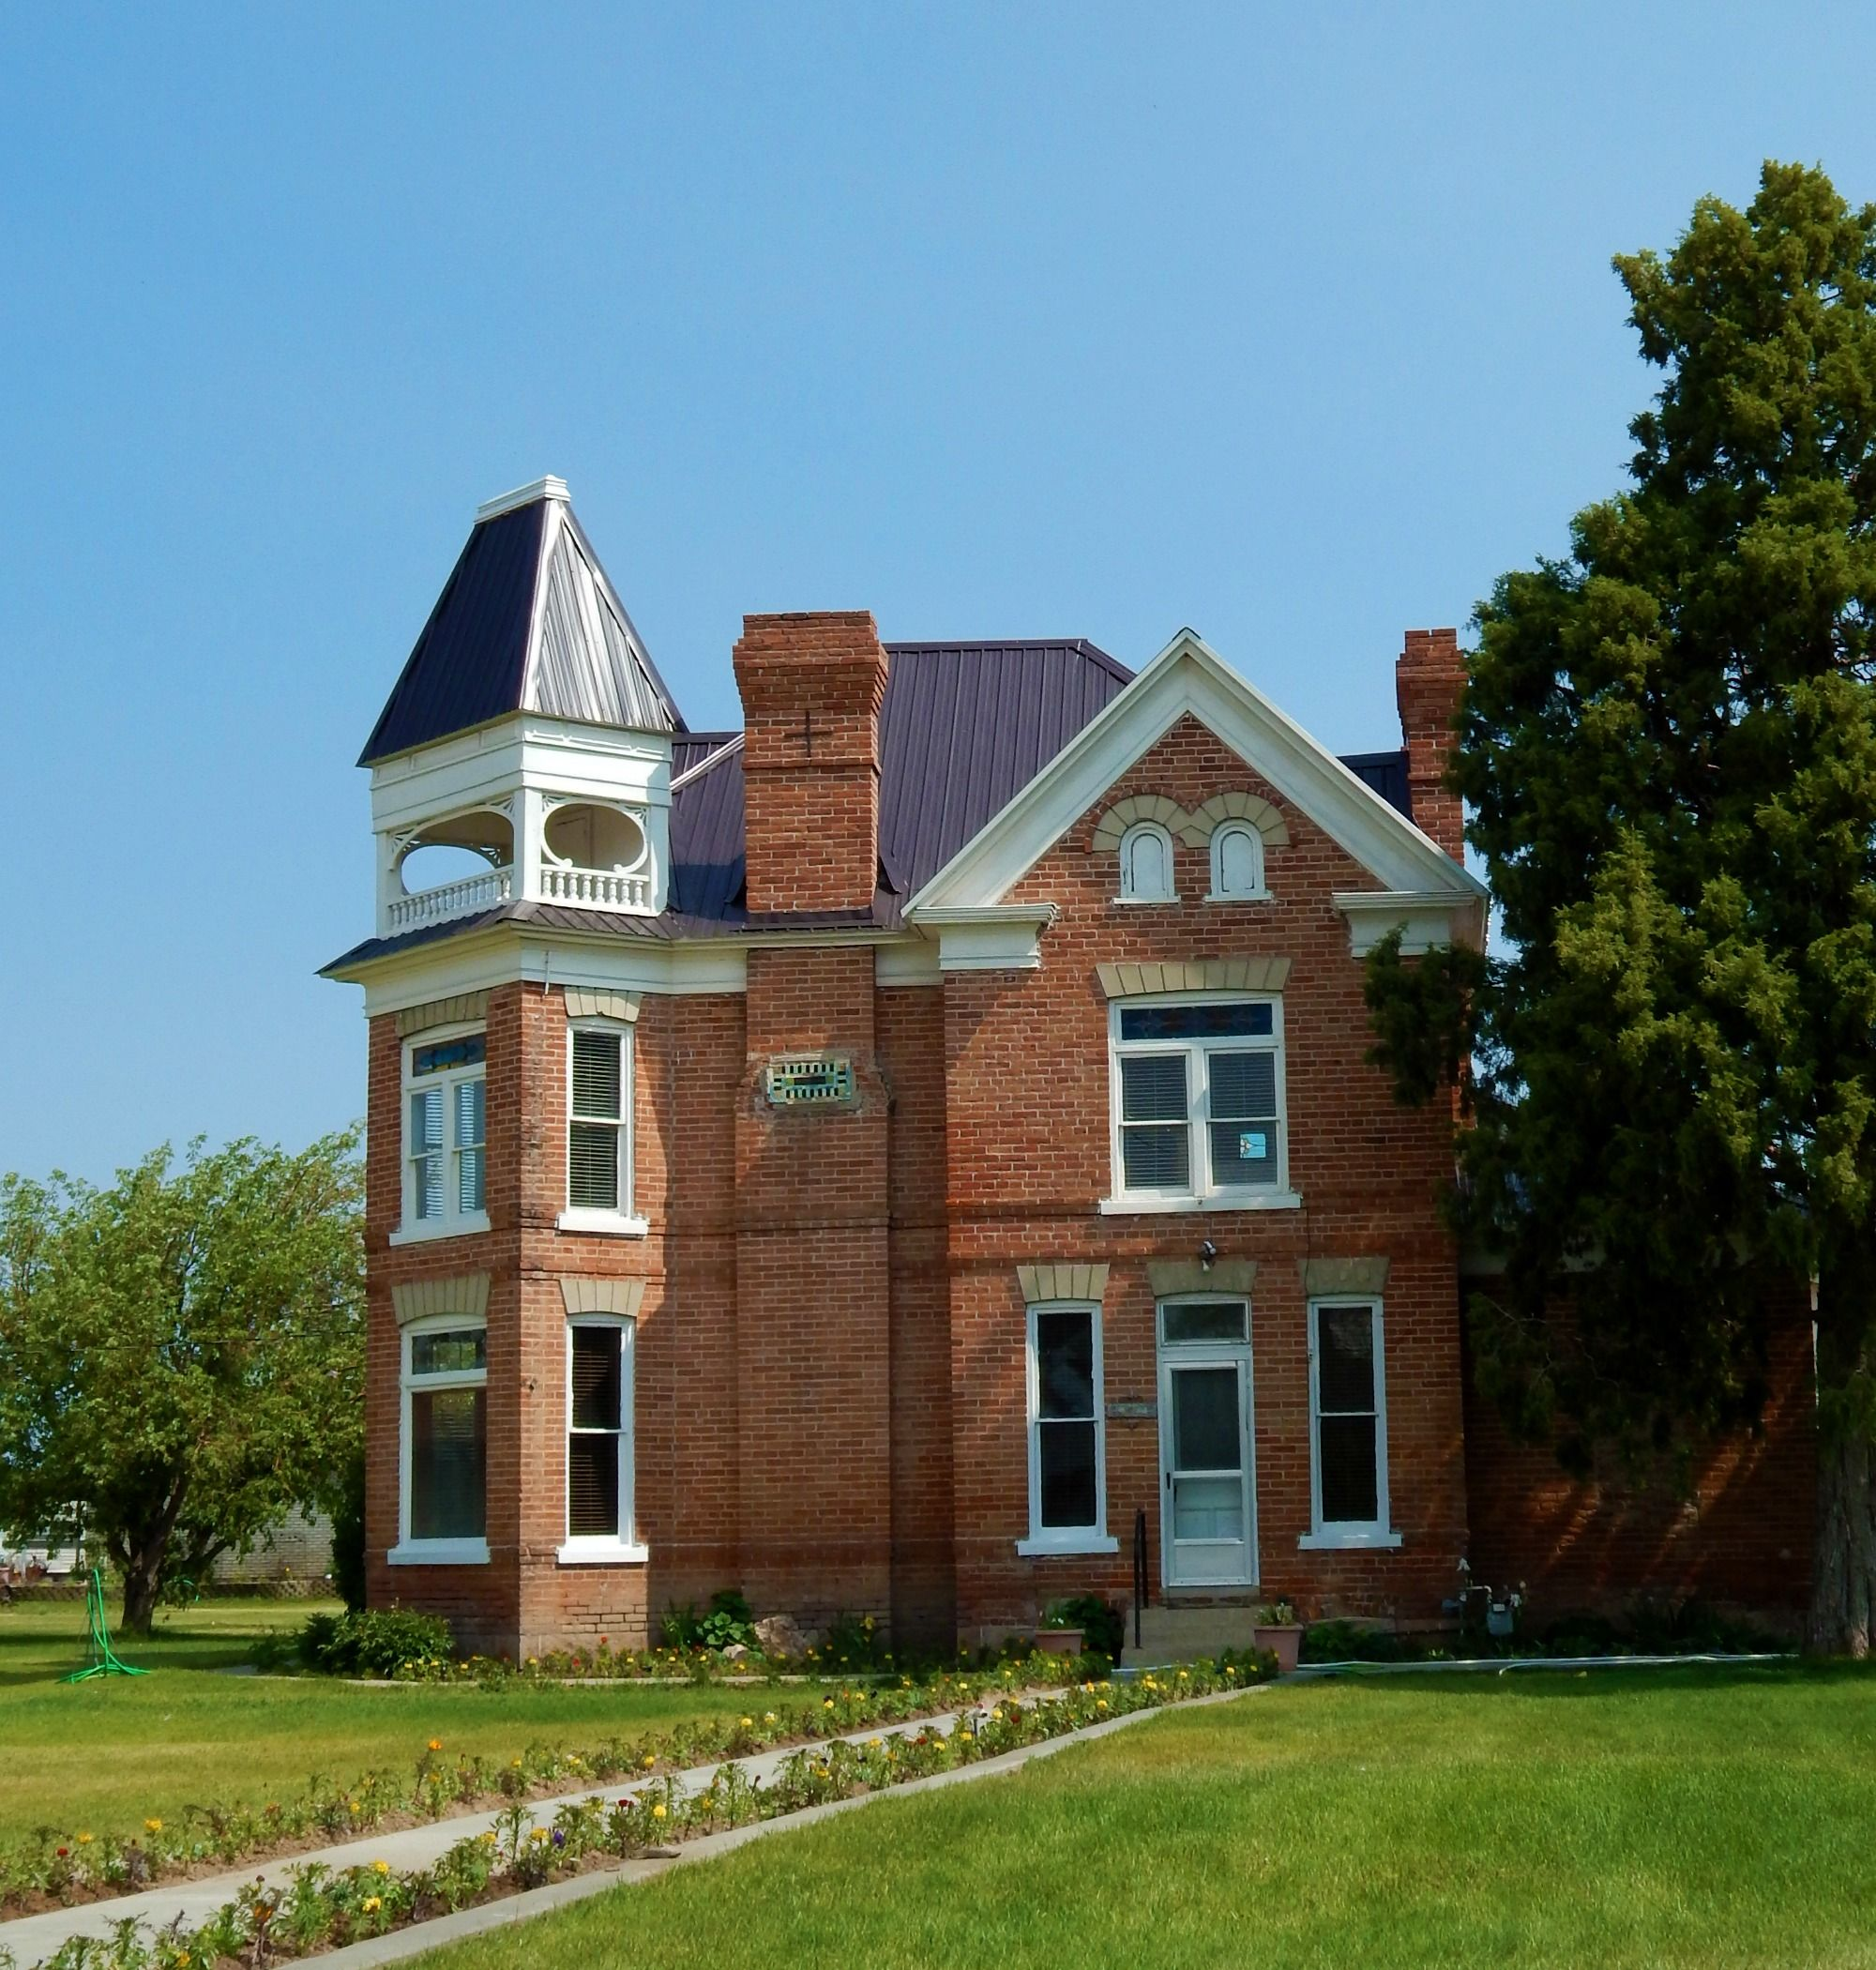 The Mary Dempster And Ira W Hatch House In Panguitch Utah Built In 1896 Learn More About The Historical Red B Red Brick House Victorian Homes Arizona House